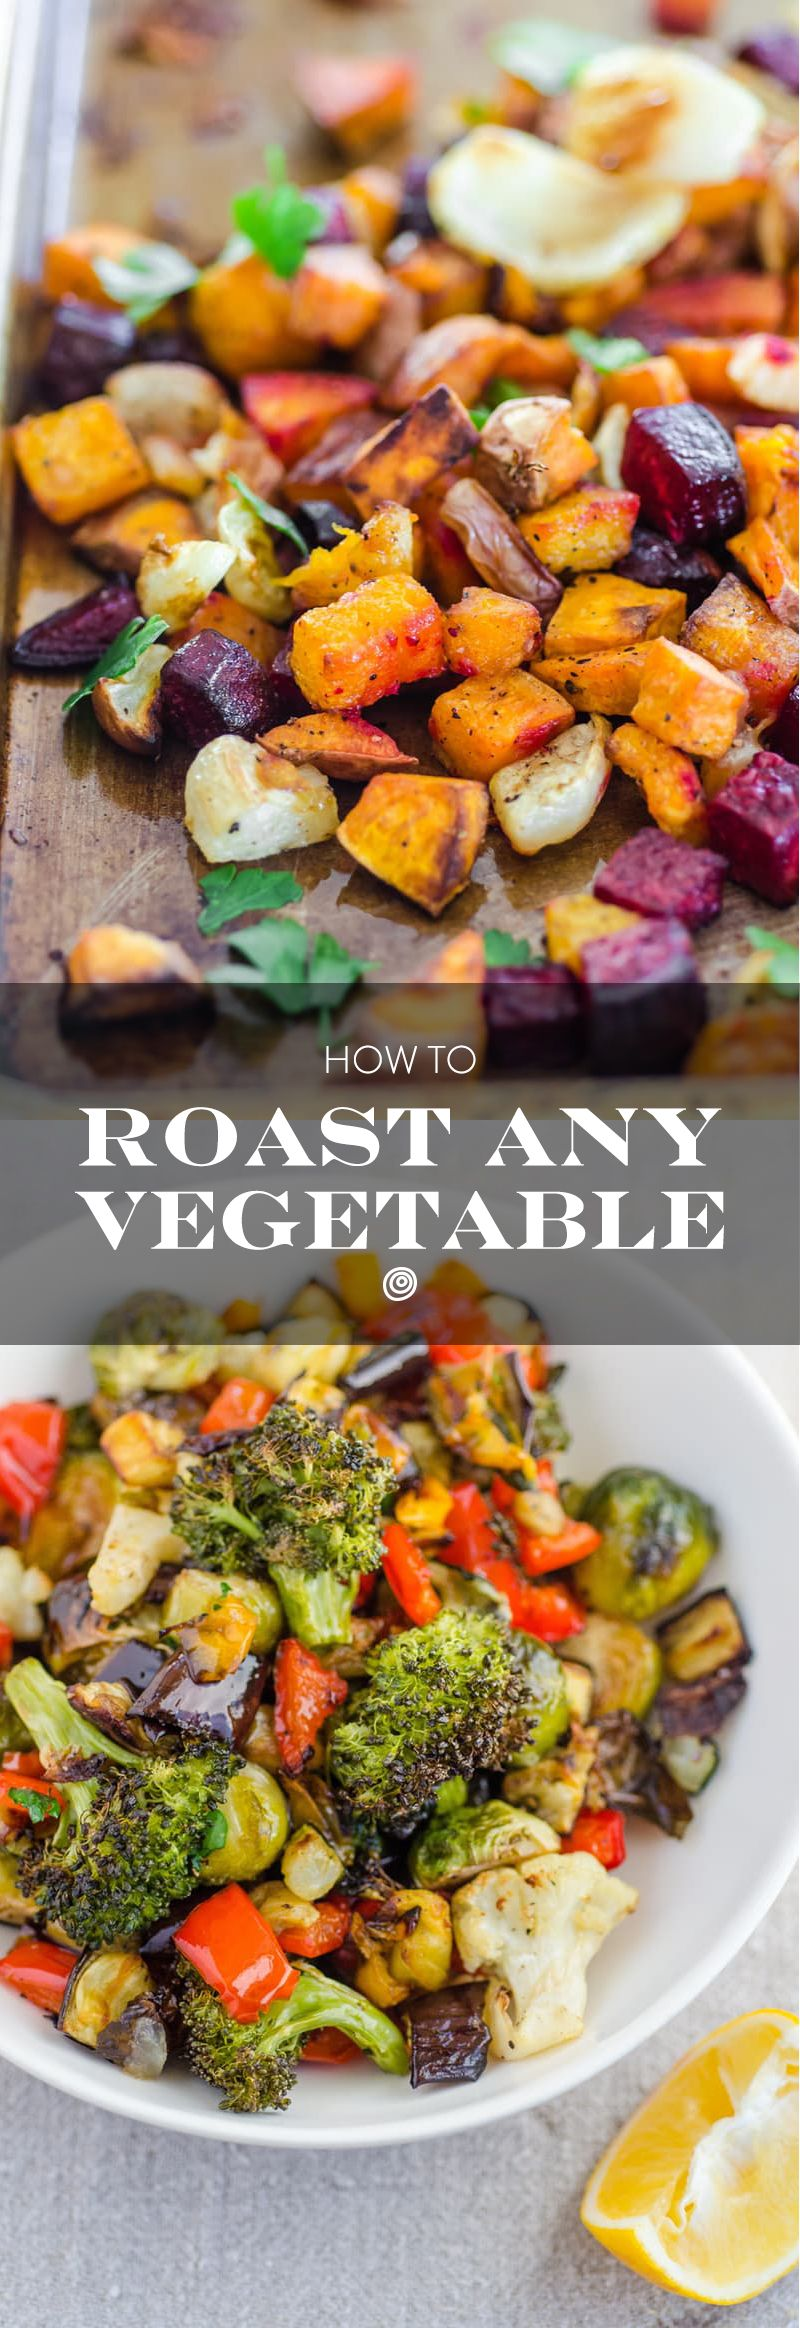 How To Roast Any Vegetable #cookingtips